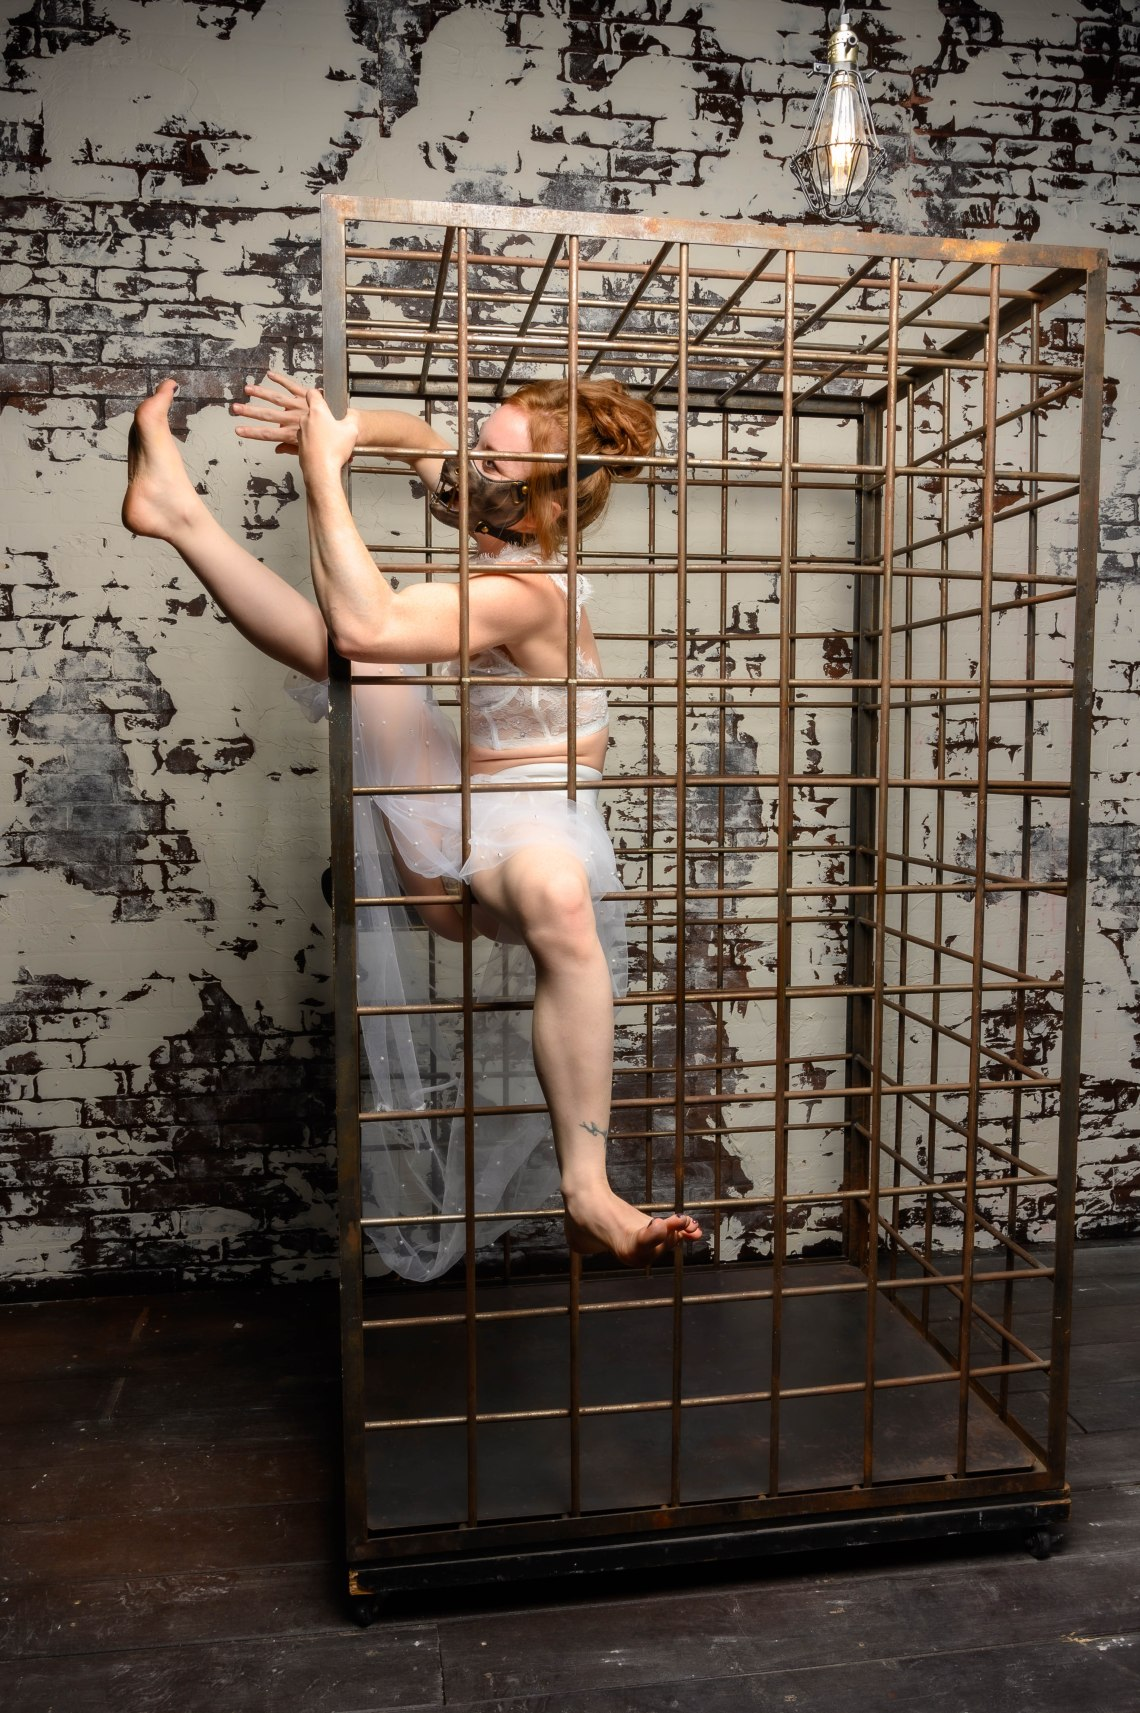 photo studio, photography studio, kink, kinky, kinky photography, dungeon, cage, human cage, hannibal, hannibal lecter, hannibal mask, dark beauty, creepy sexy, contortion, contortionist, acrobat, contortion cage, event entertainment, party planner, redheads, foot fetish, sexy feet, feet worship, feet queen, feet fetish, pretty feet, bare feet, Las Vegas photographer, Las Vegas models, fetish model,